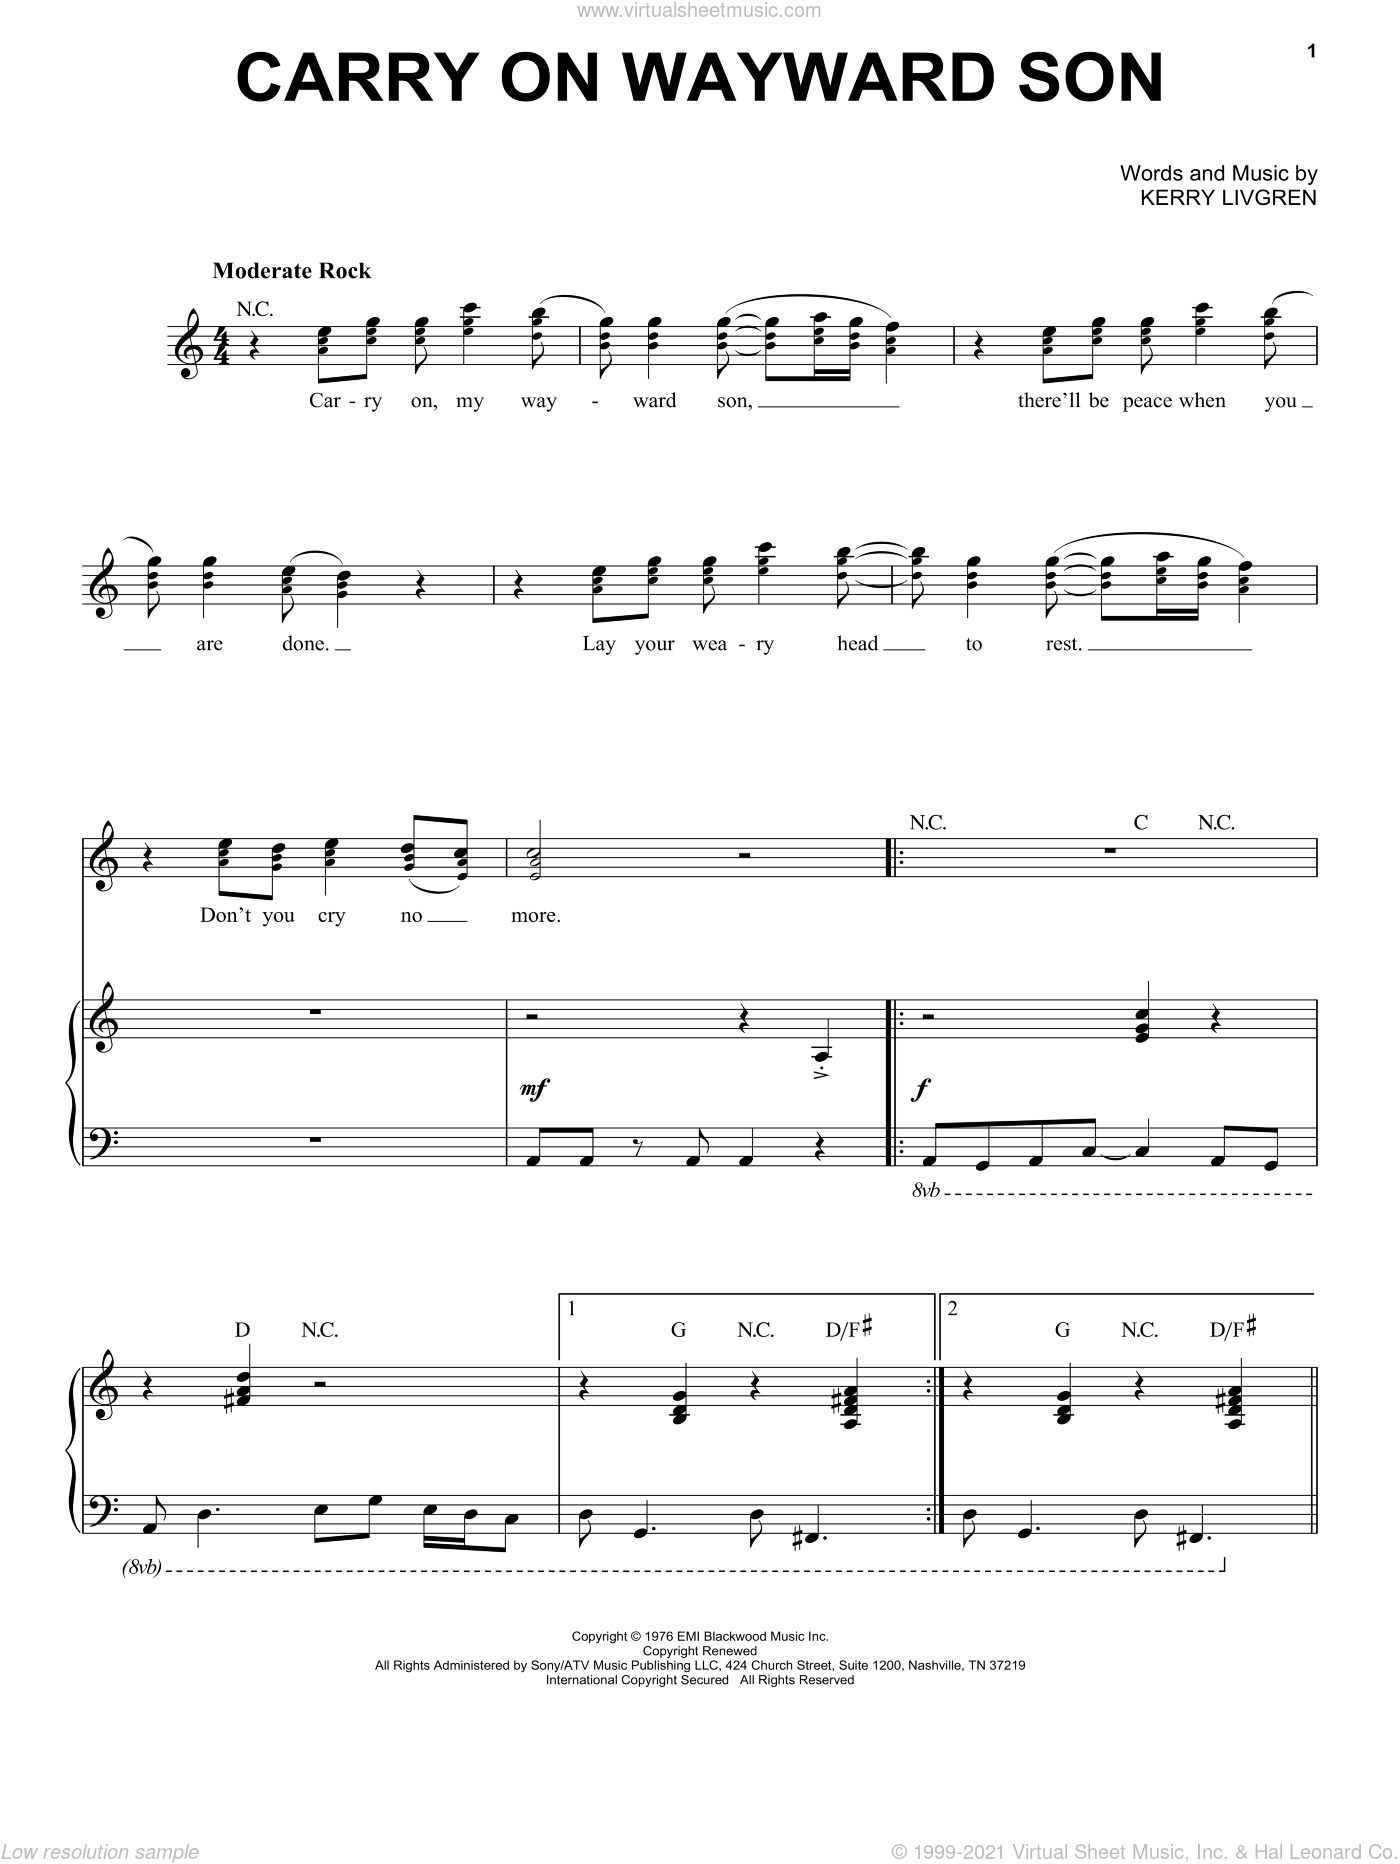 Carry On Wayward Son sheet music for voice and piano by Kansas and Kerry Livgren, intermediate skill level